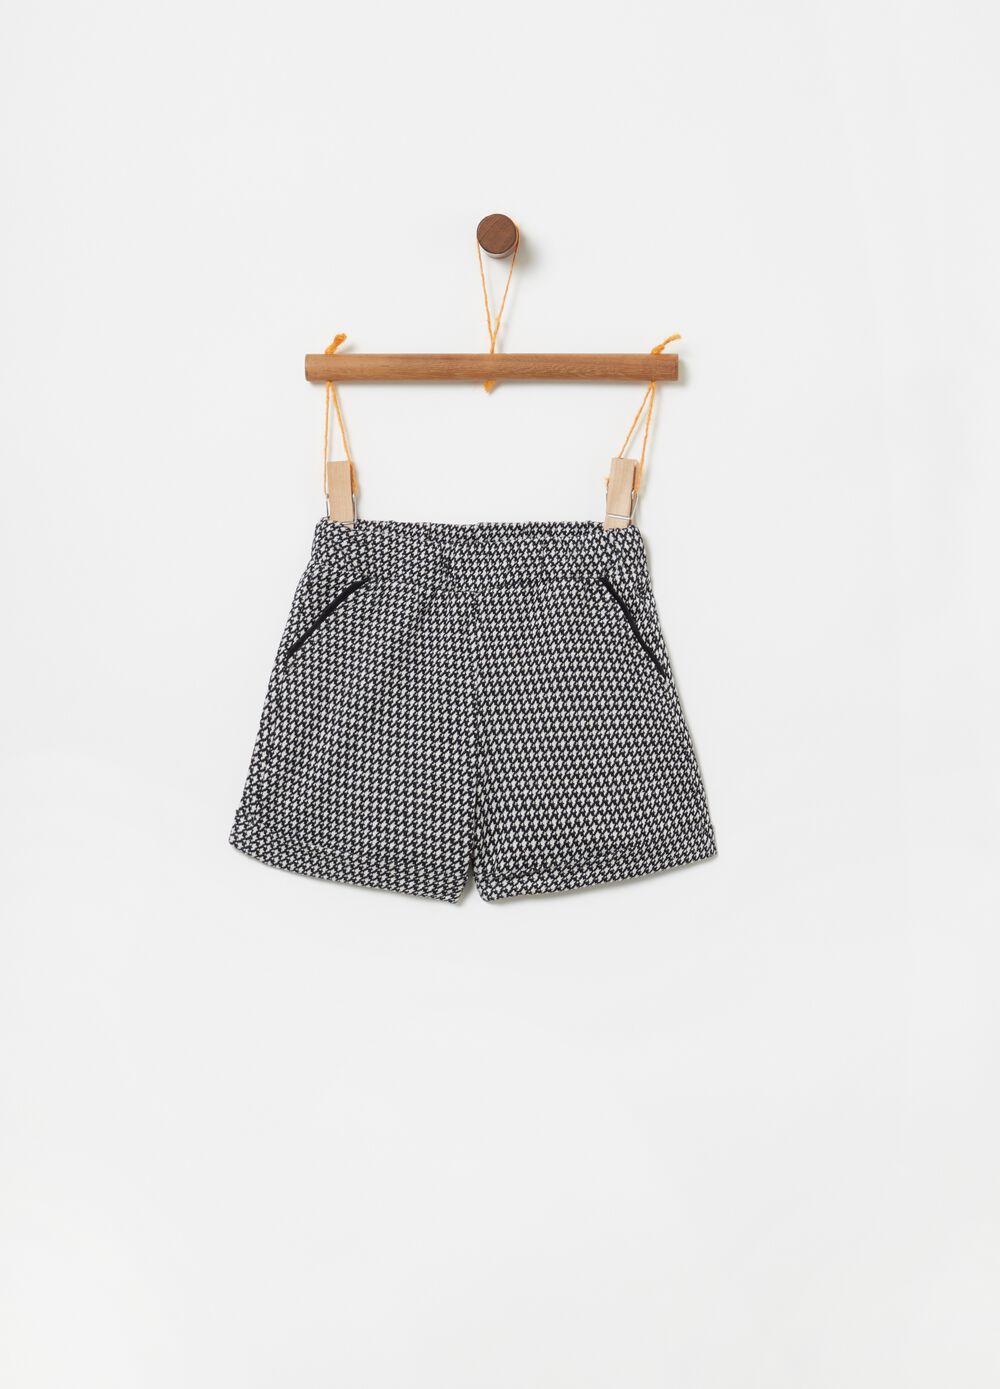 Jacquard shorts with hounds' tooth pattern